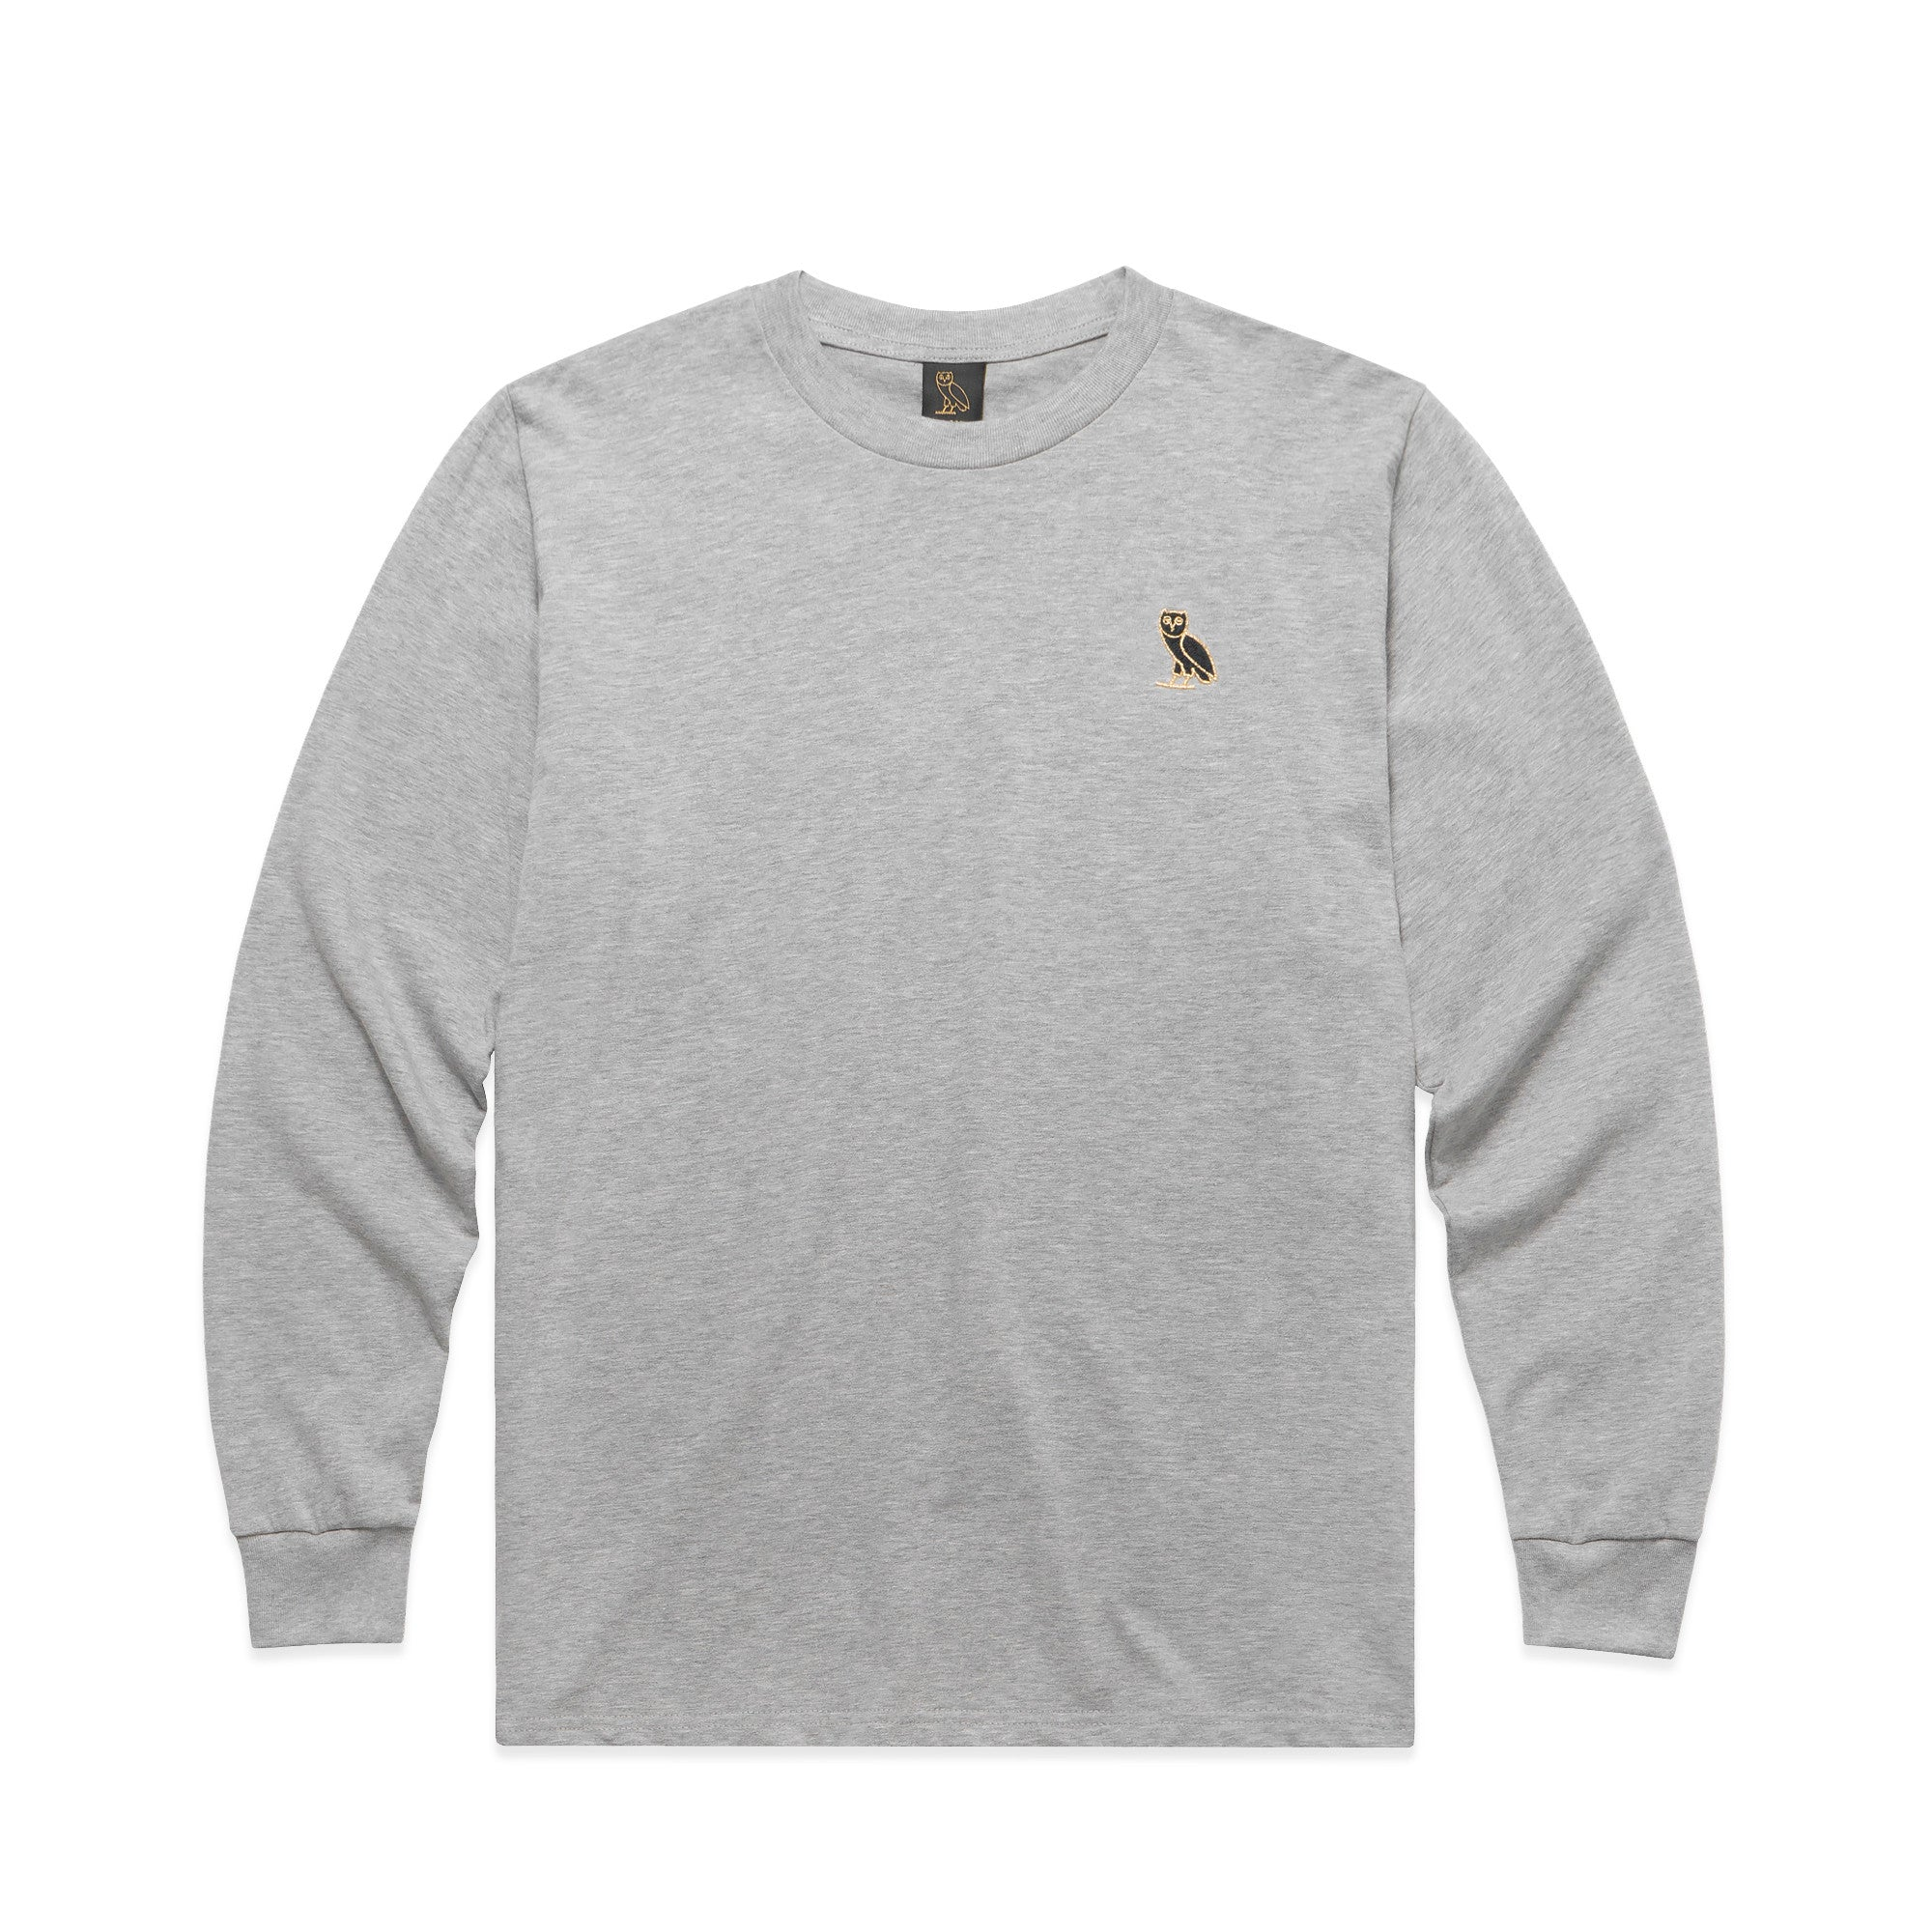 OWL LOGO EMBROIDERED LONGSLEEVE - GREY